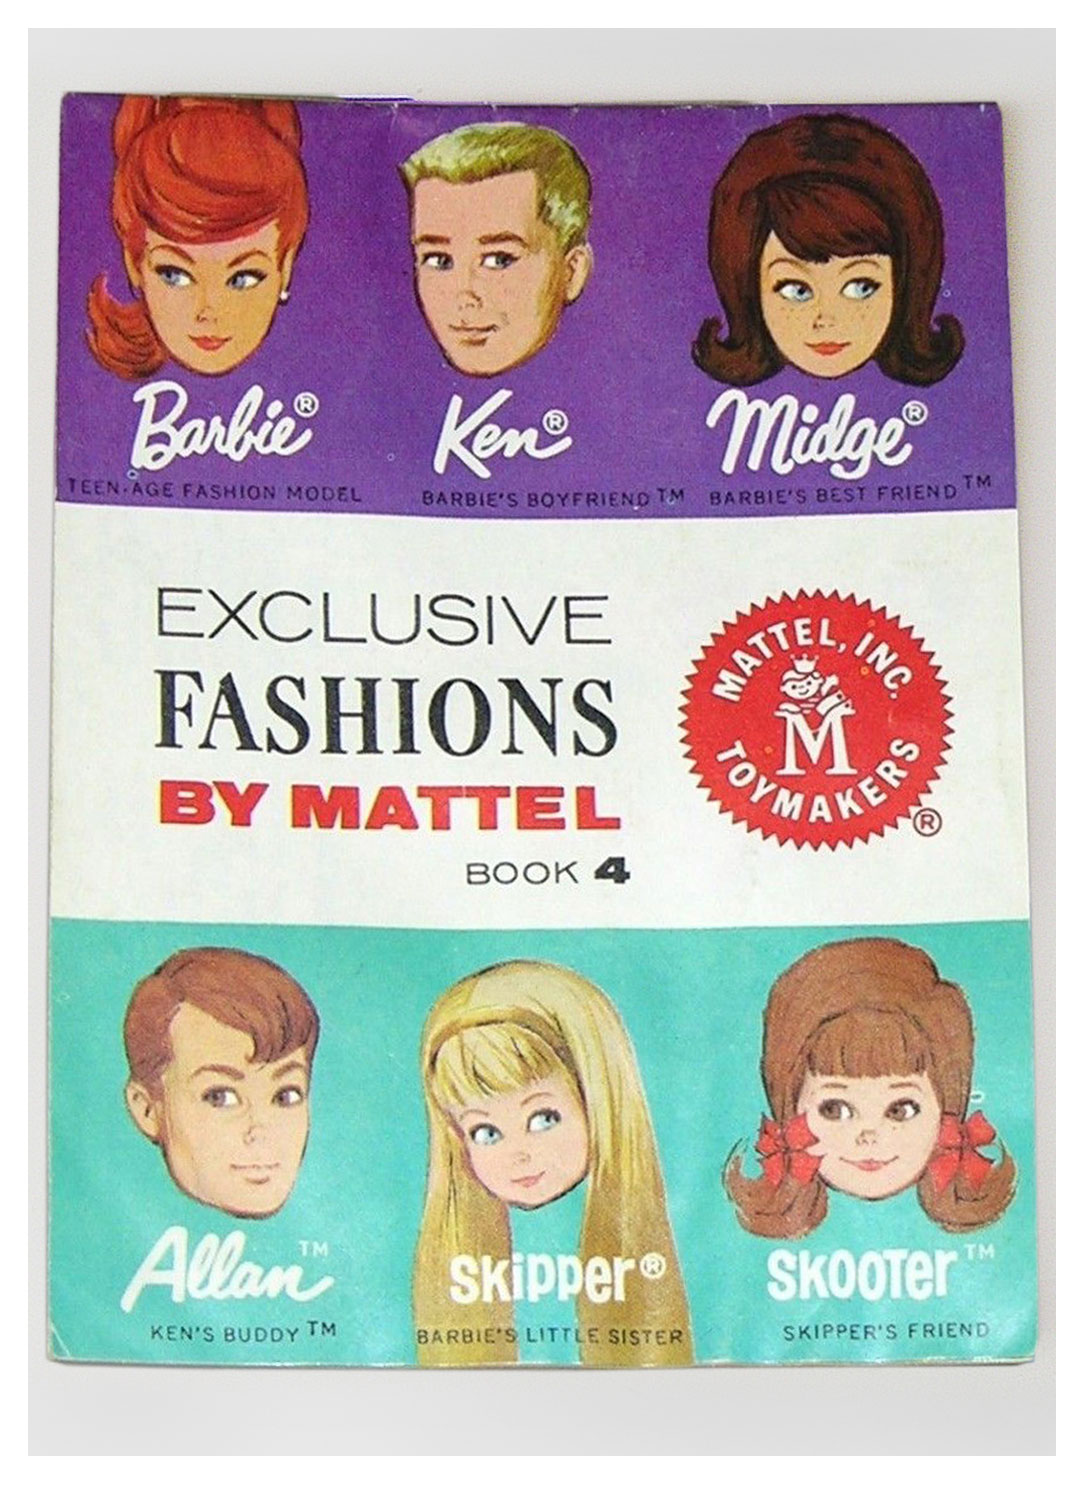 1965 Exclusive Fashions book 4